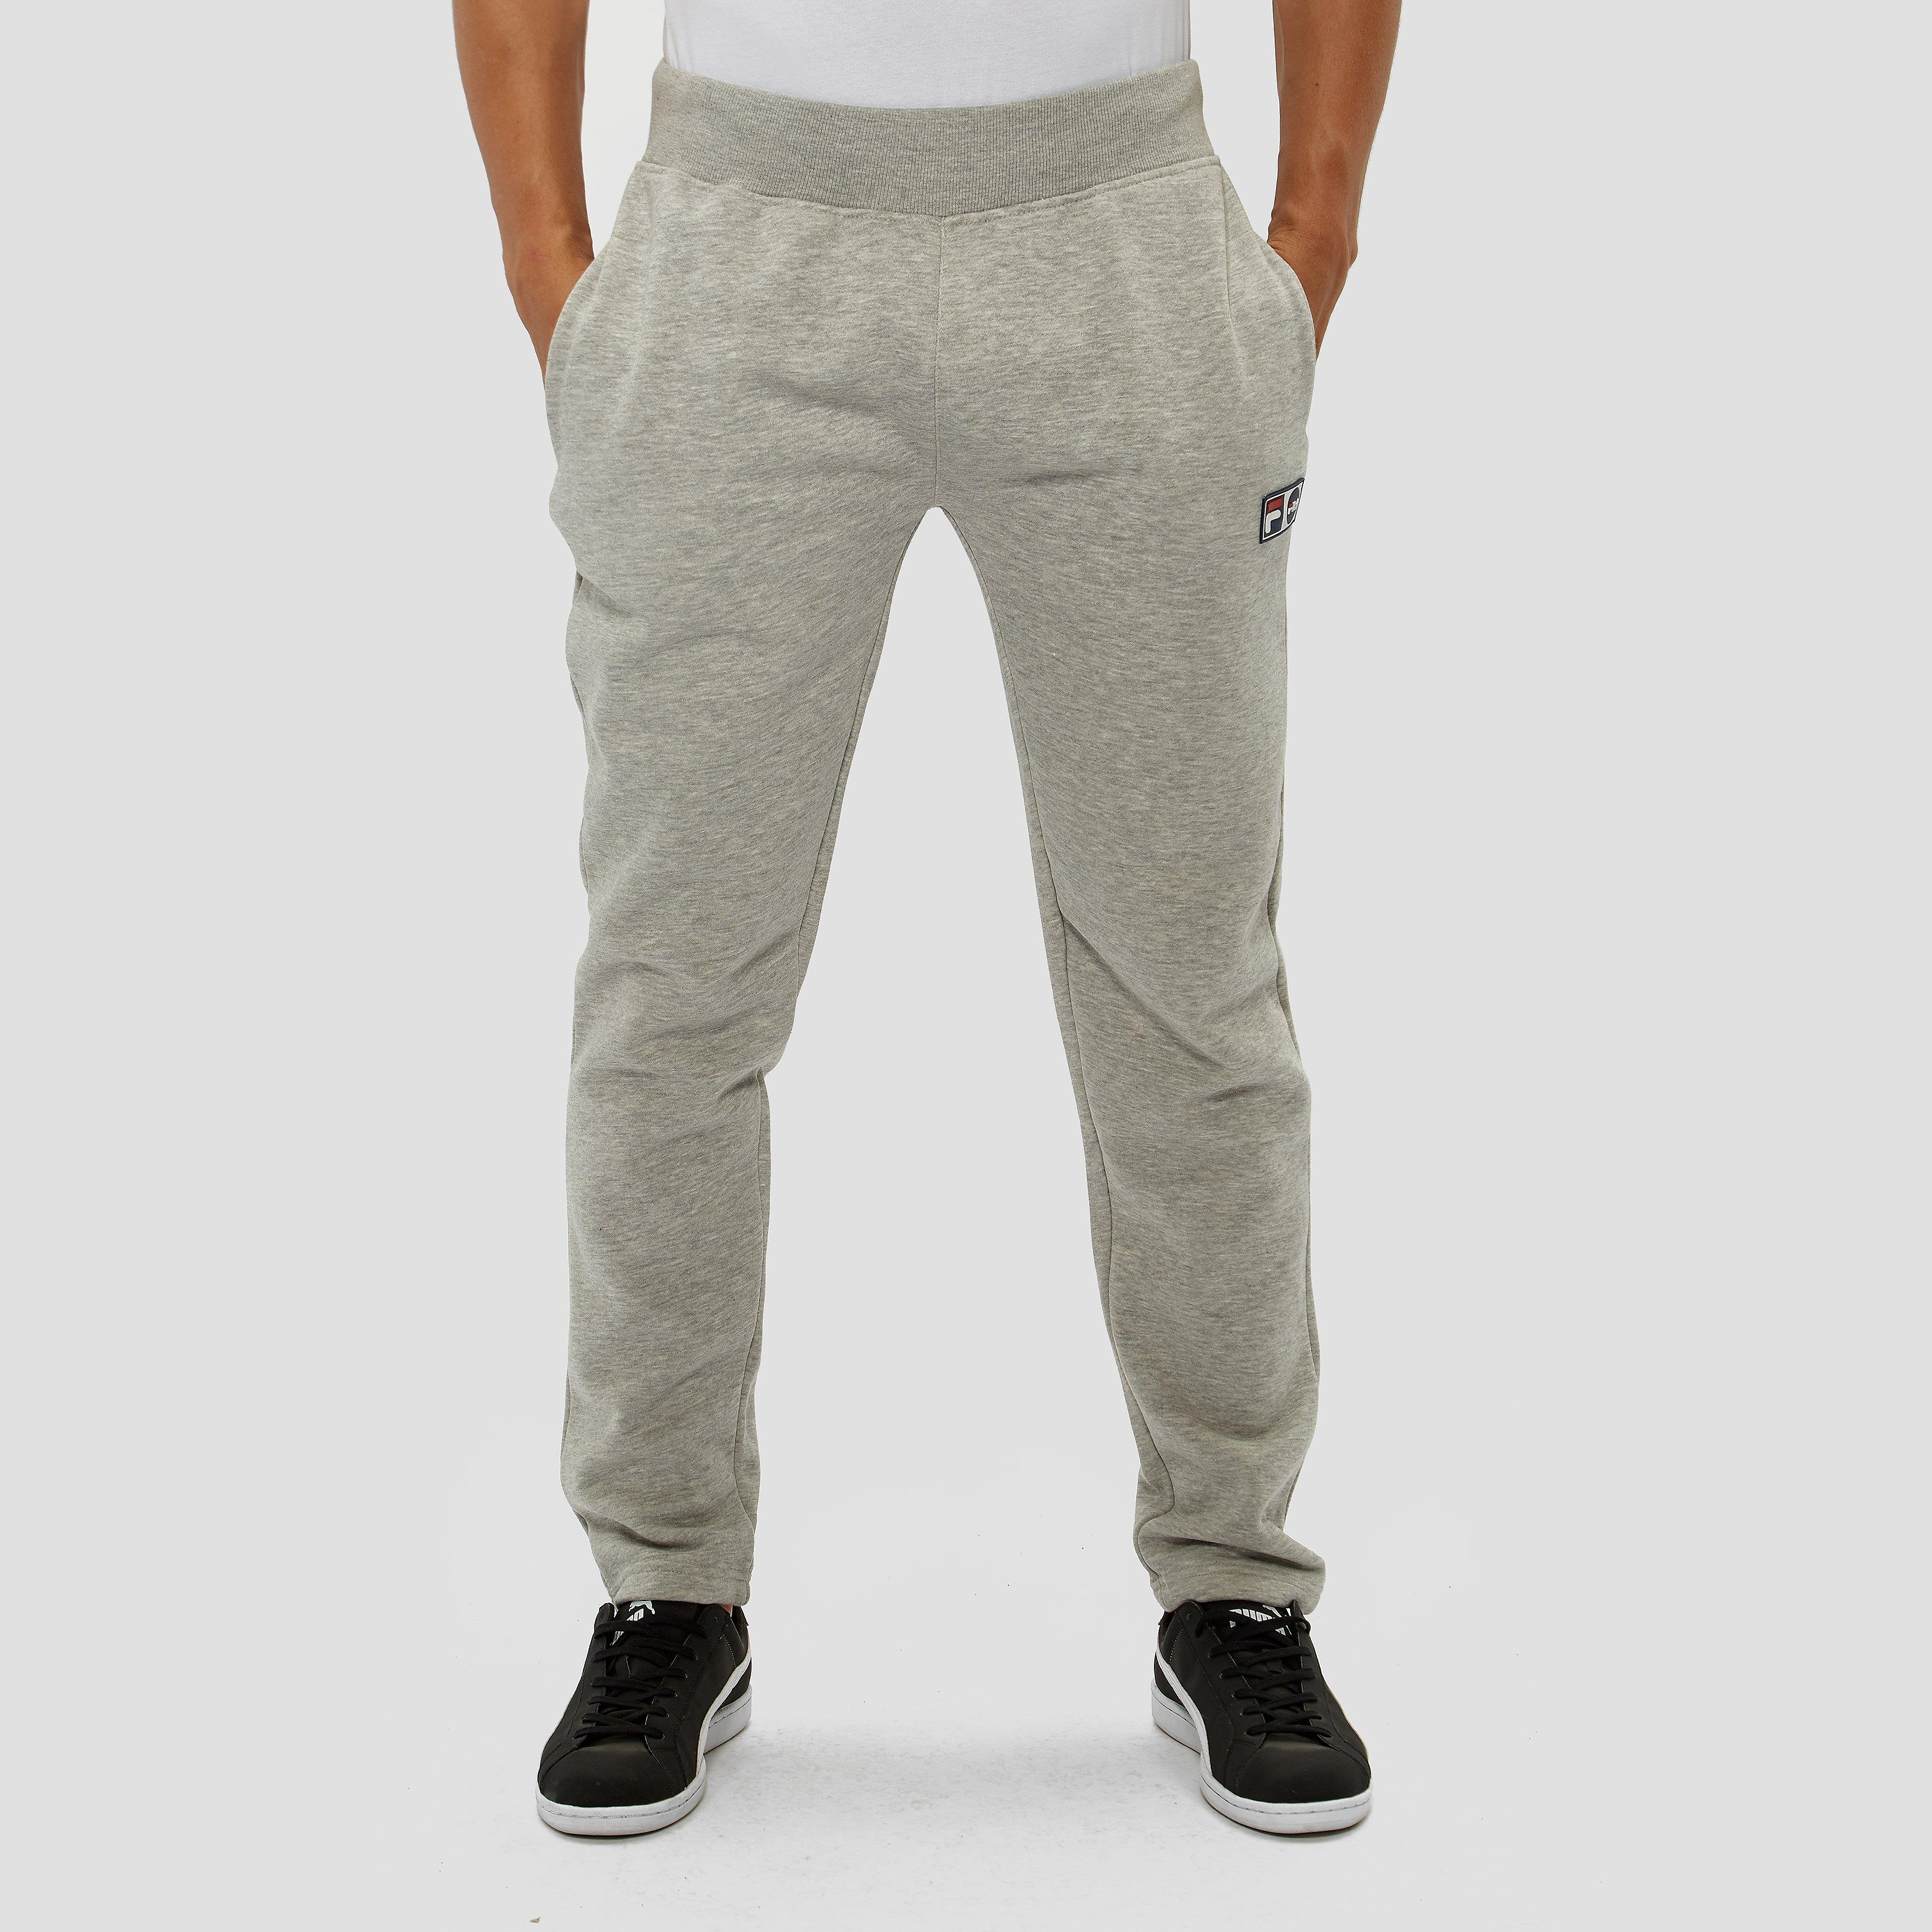 FILA PORESE JOGGINGBROEK HEREN